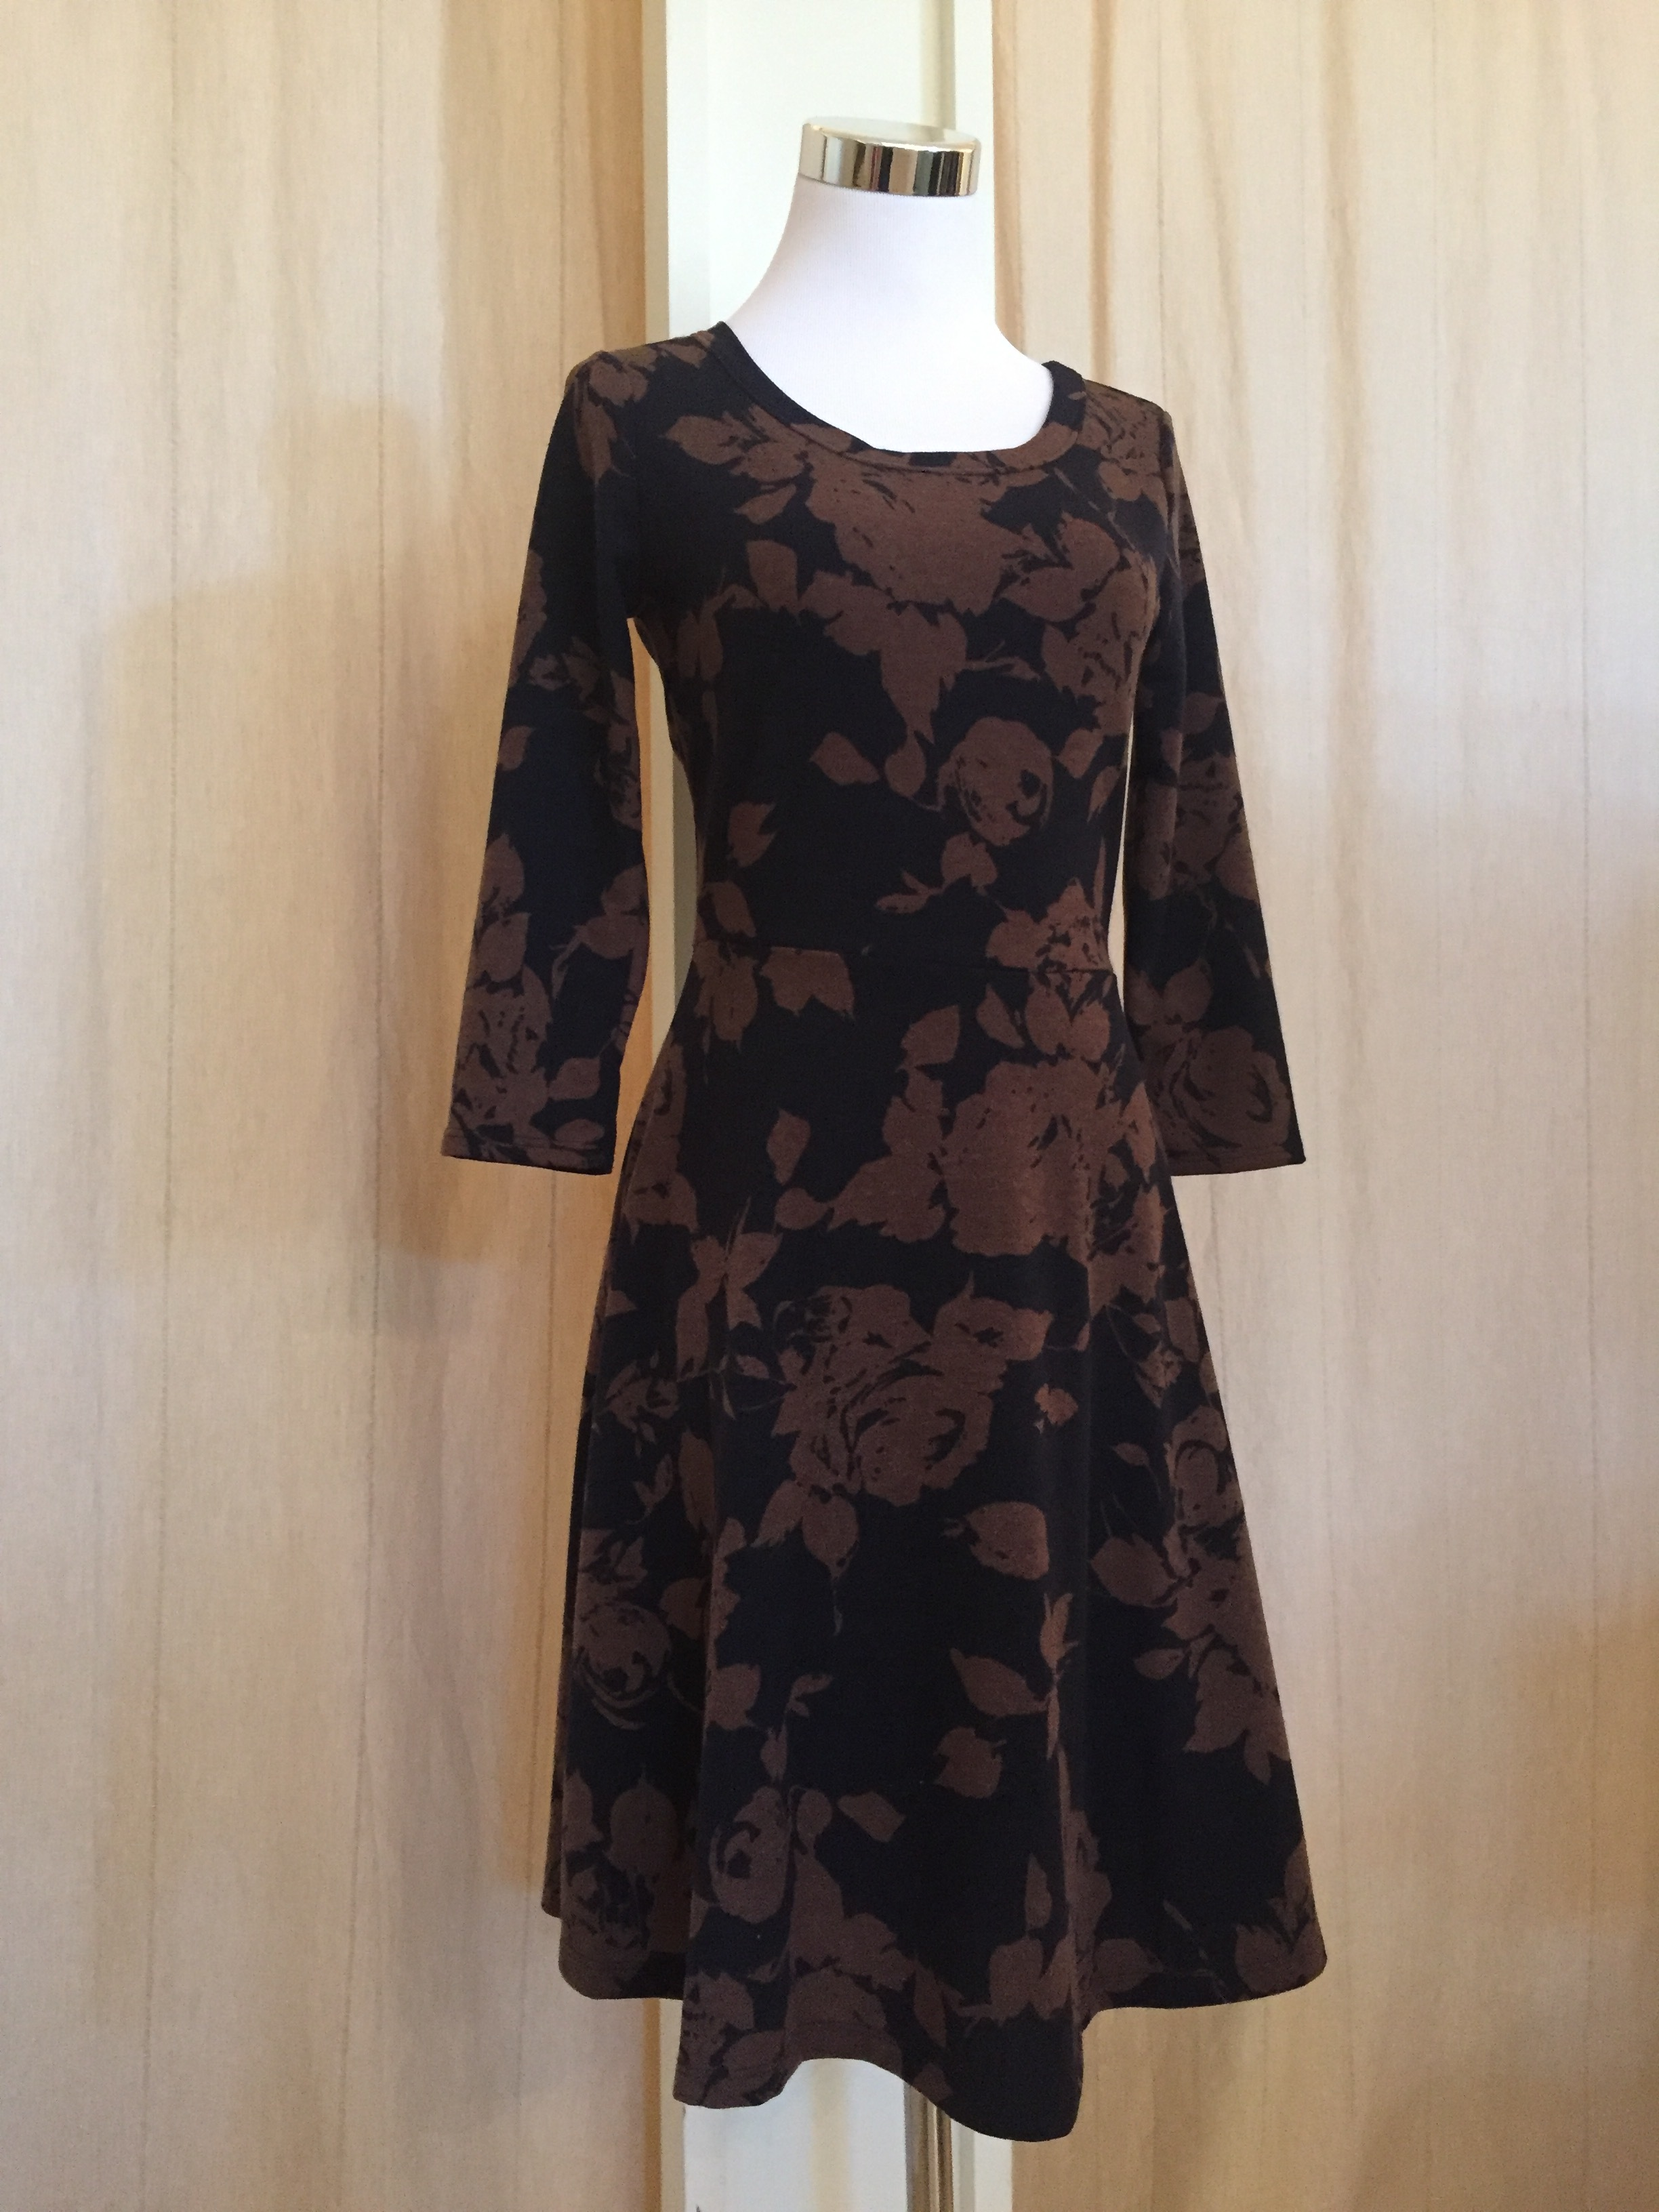 Black and brown floral dress $45